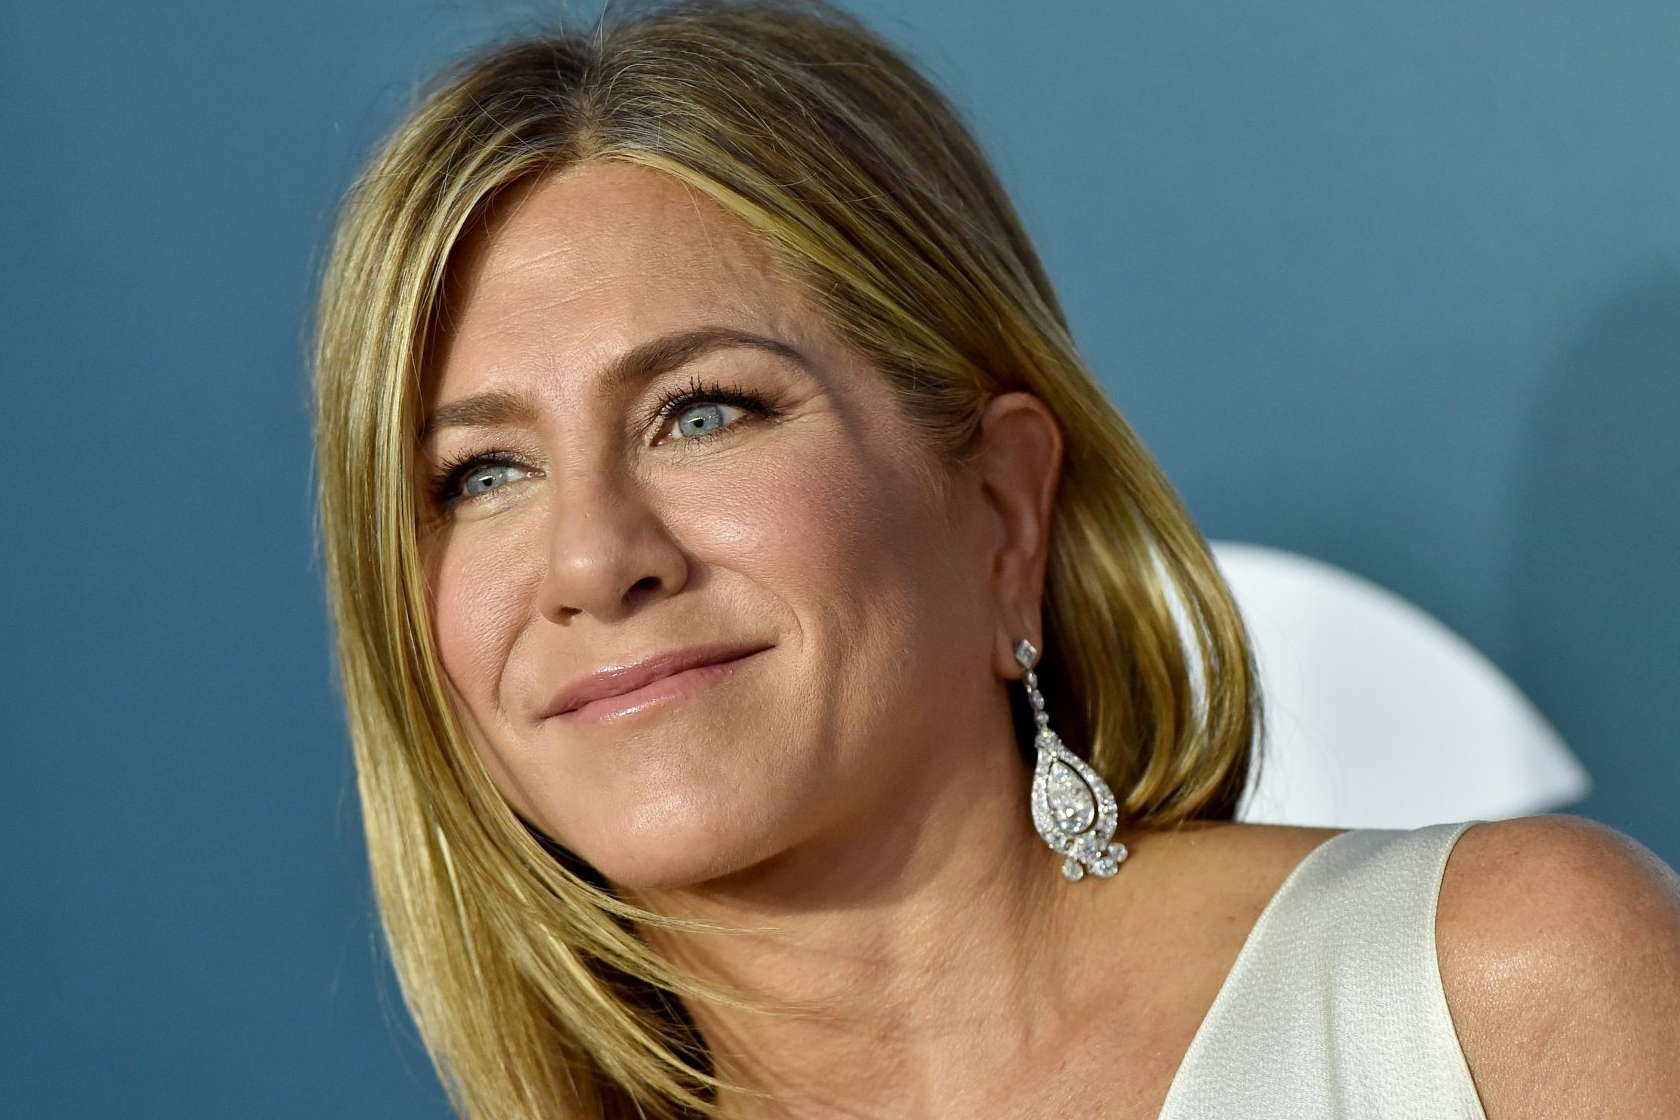 The Jennifer Aniston Effect: why we are still obsessed